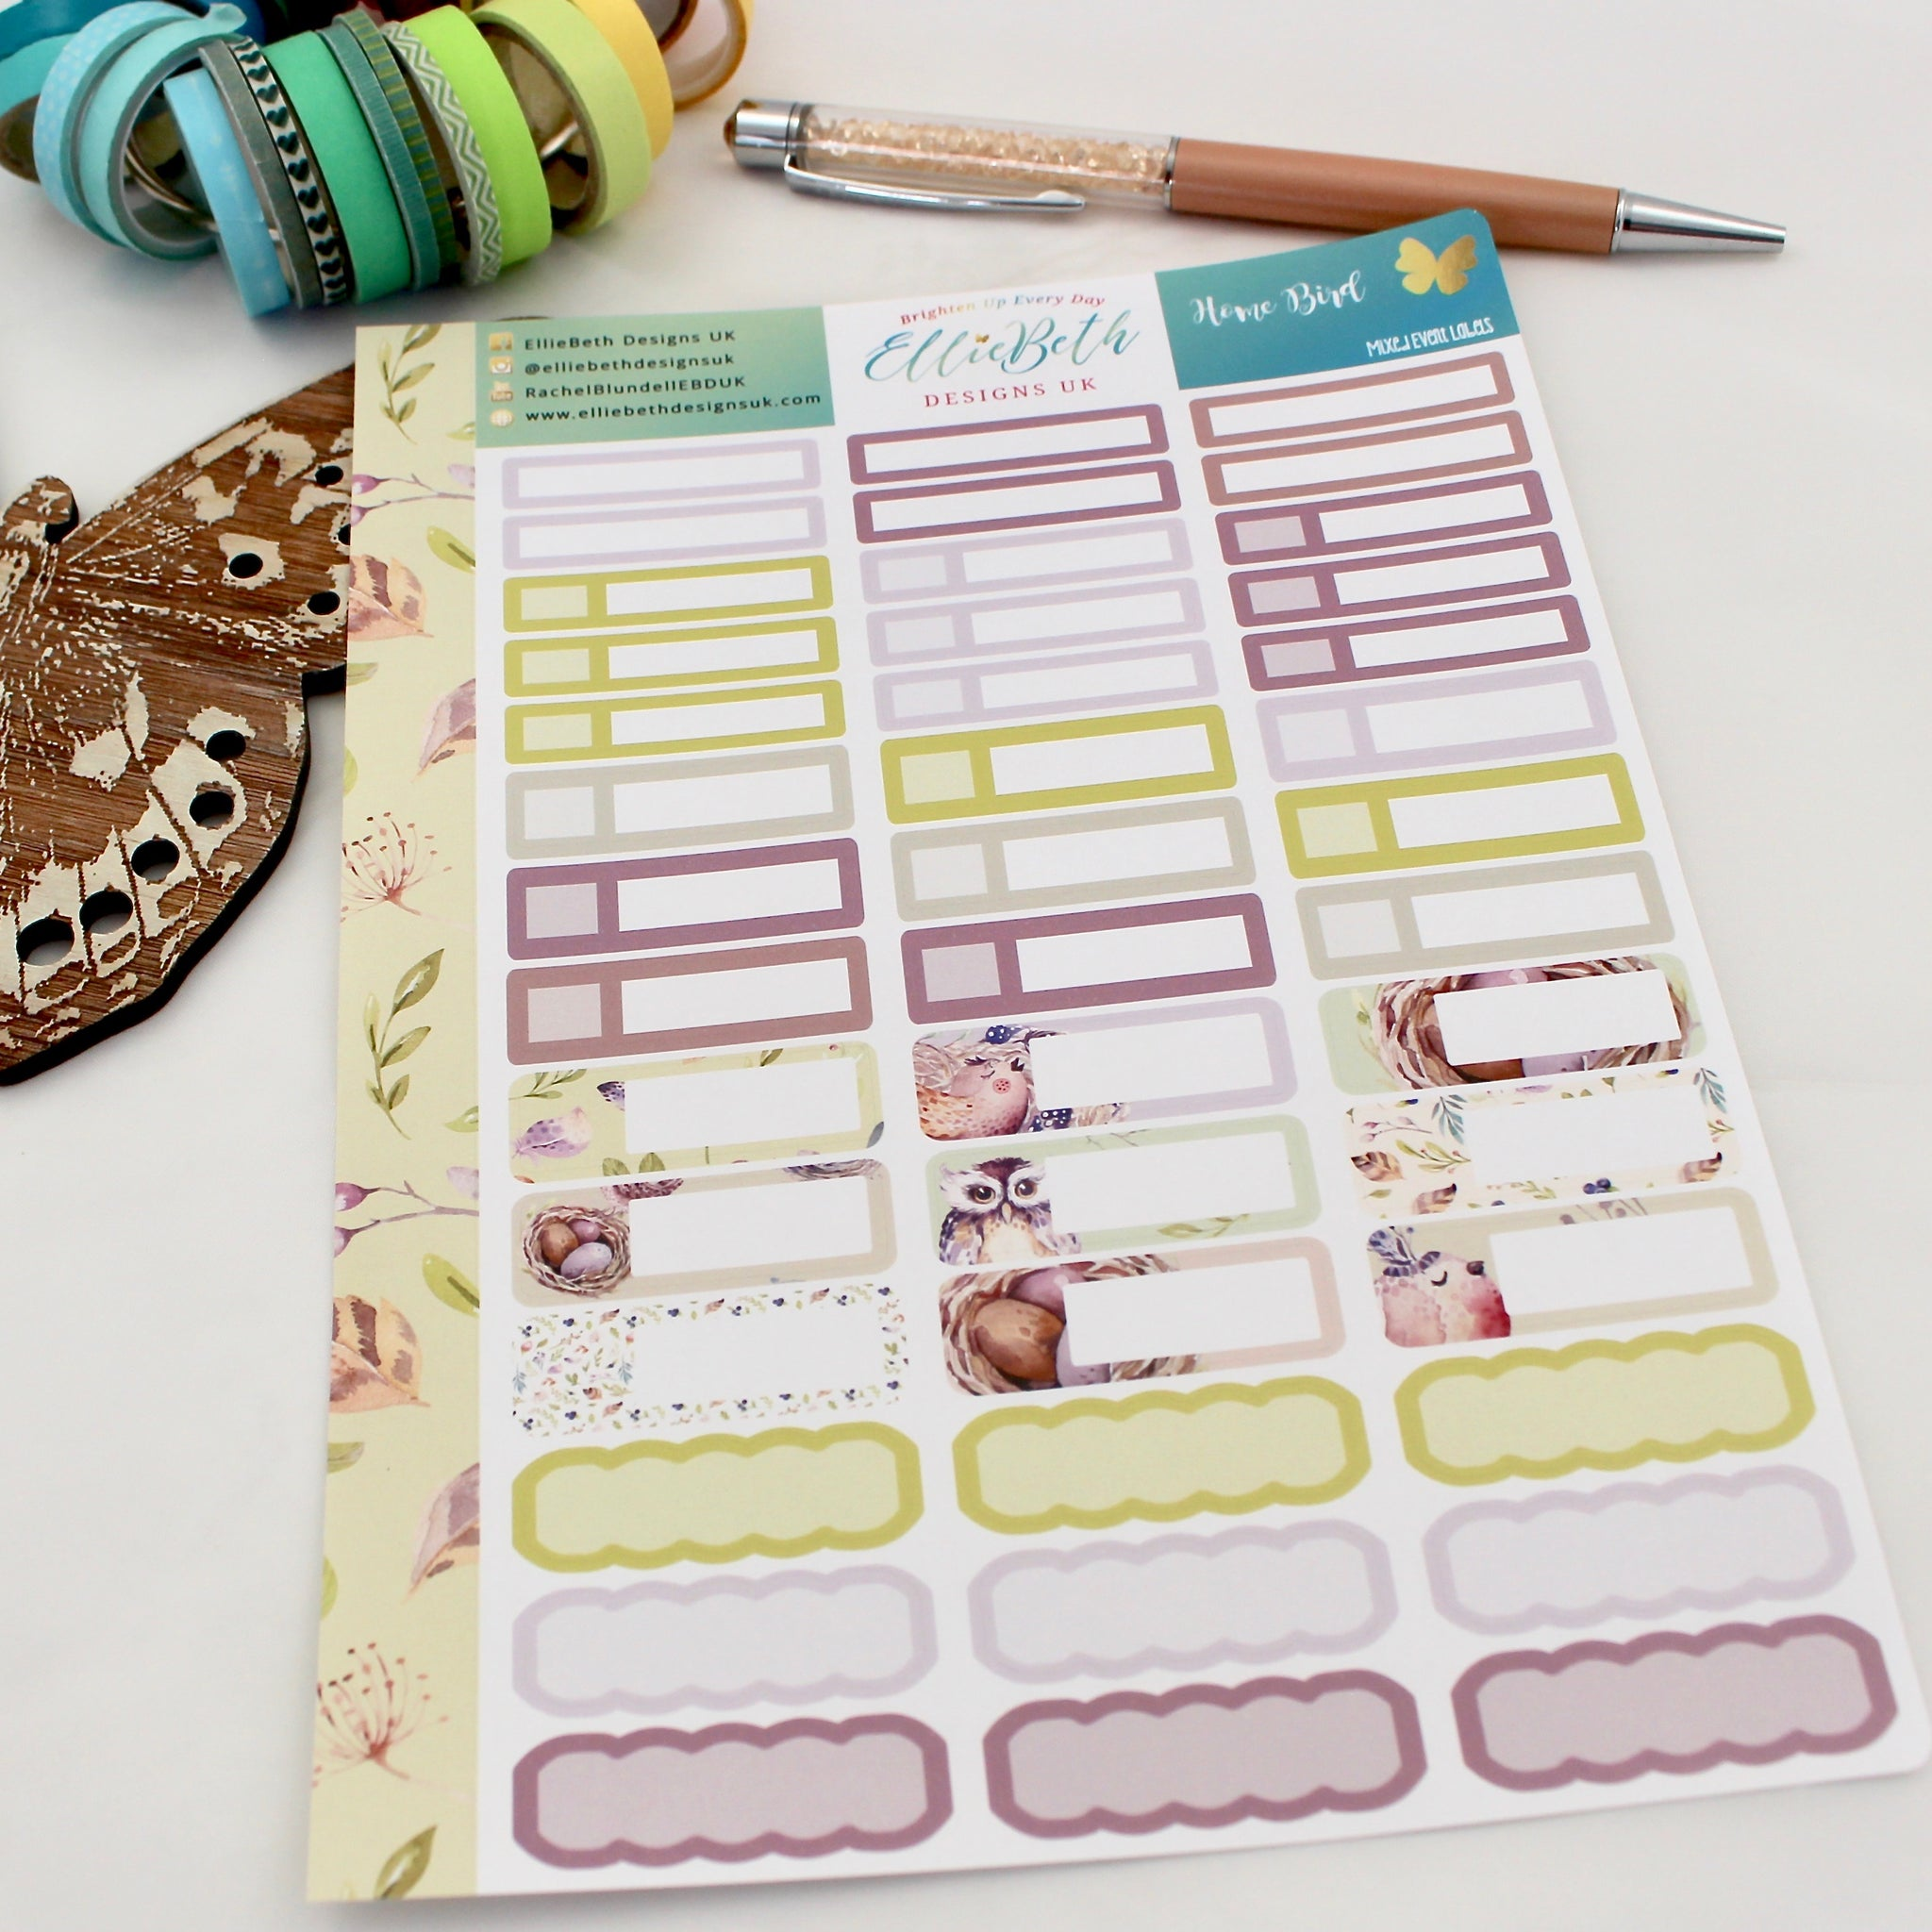 'Home Bird' - Mixed Event Labels -  A5 binder ready planner stickers